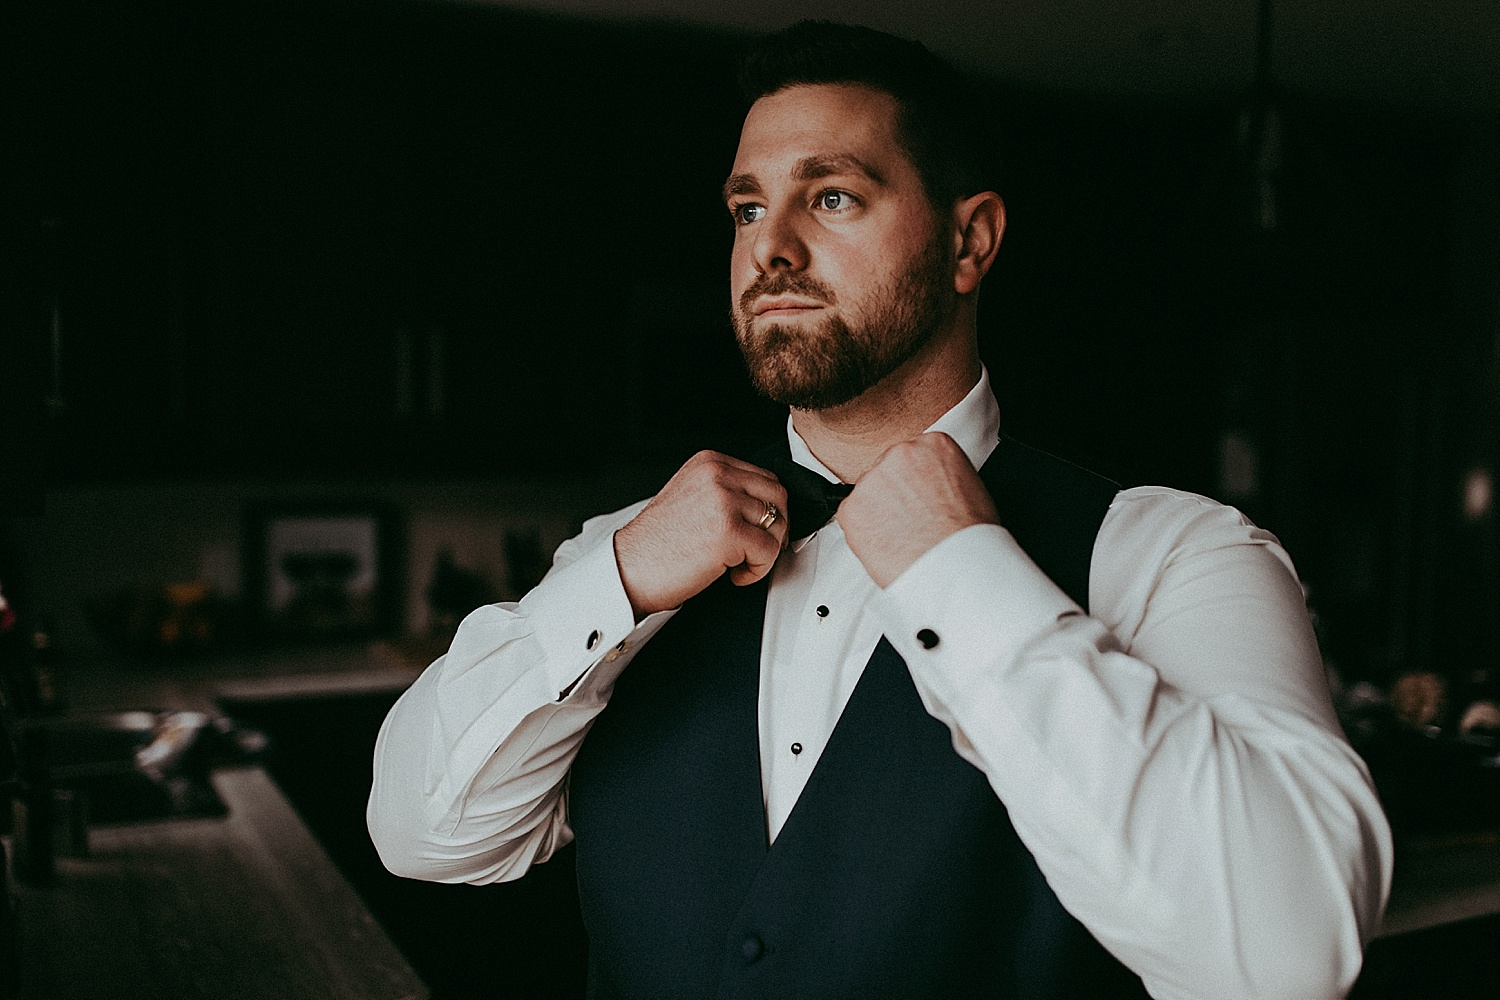 groom adjusting bow tie wedding photography